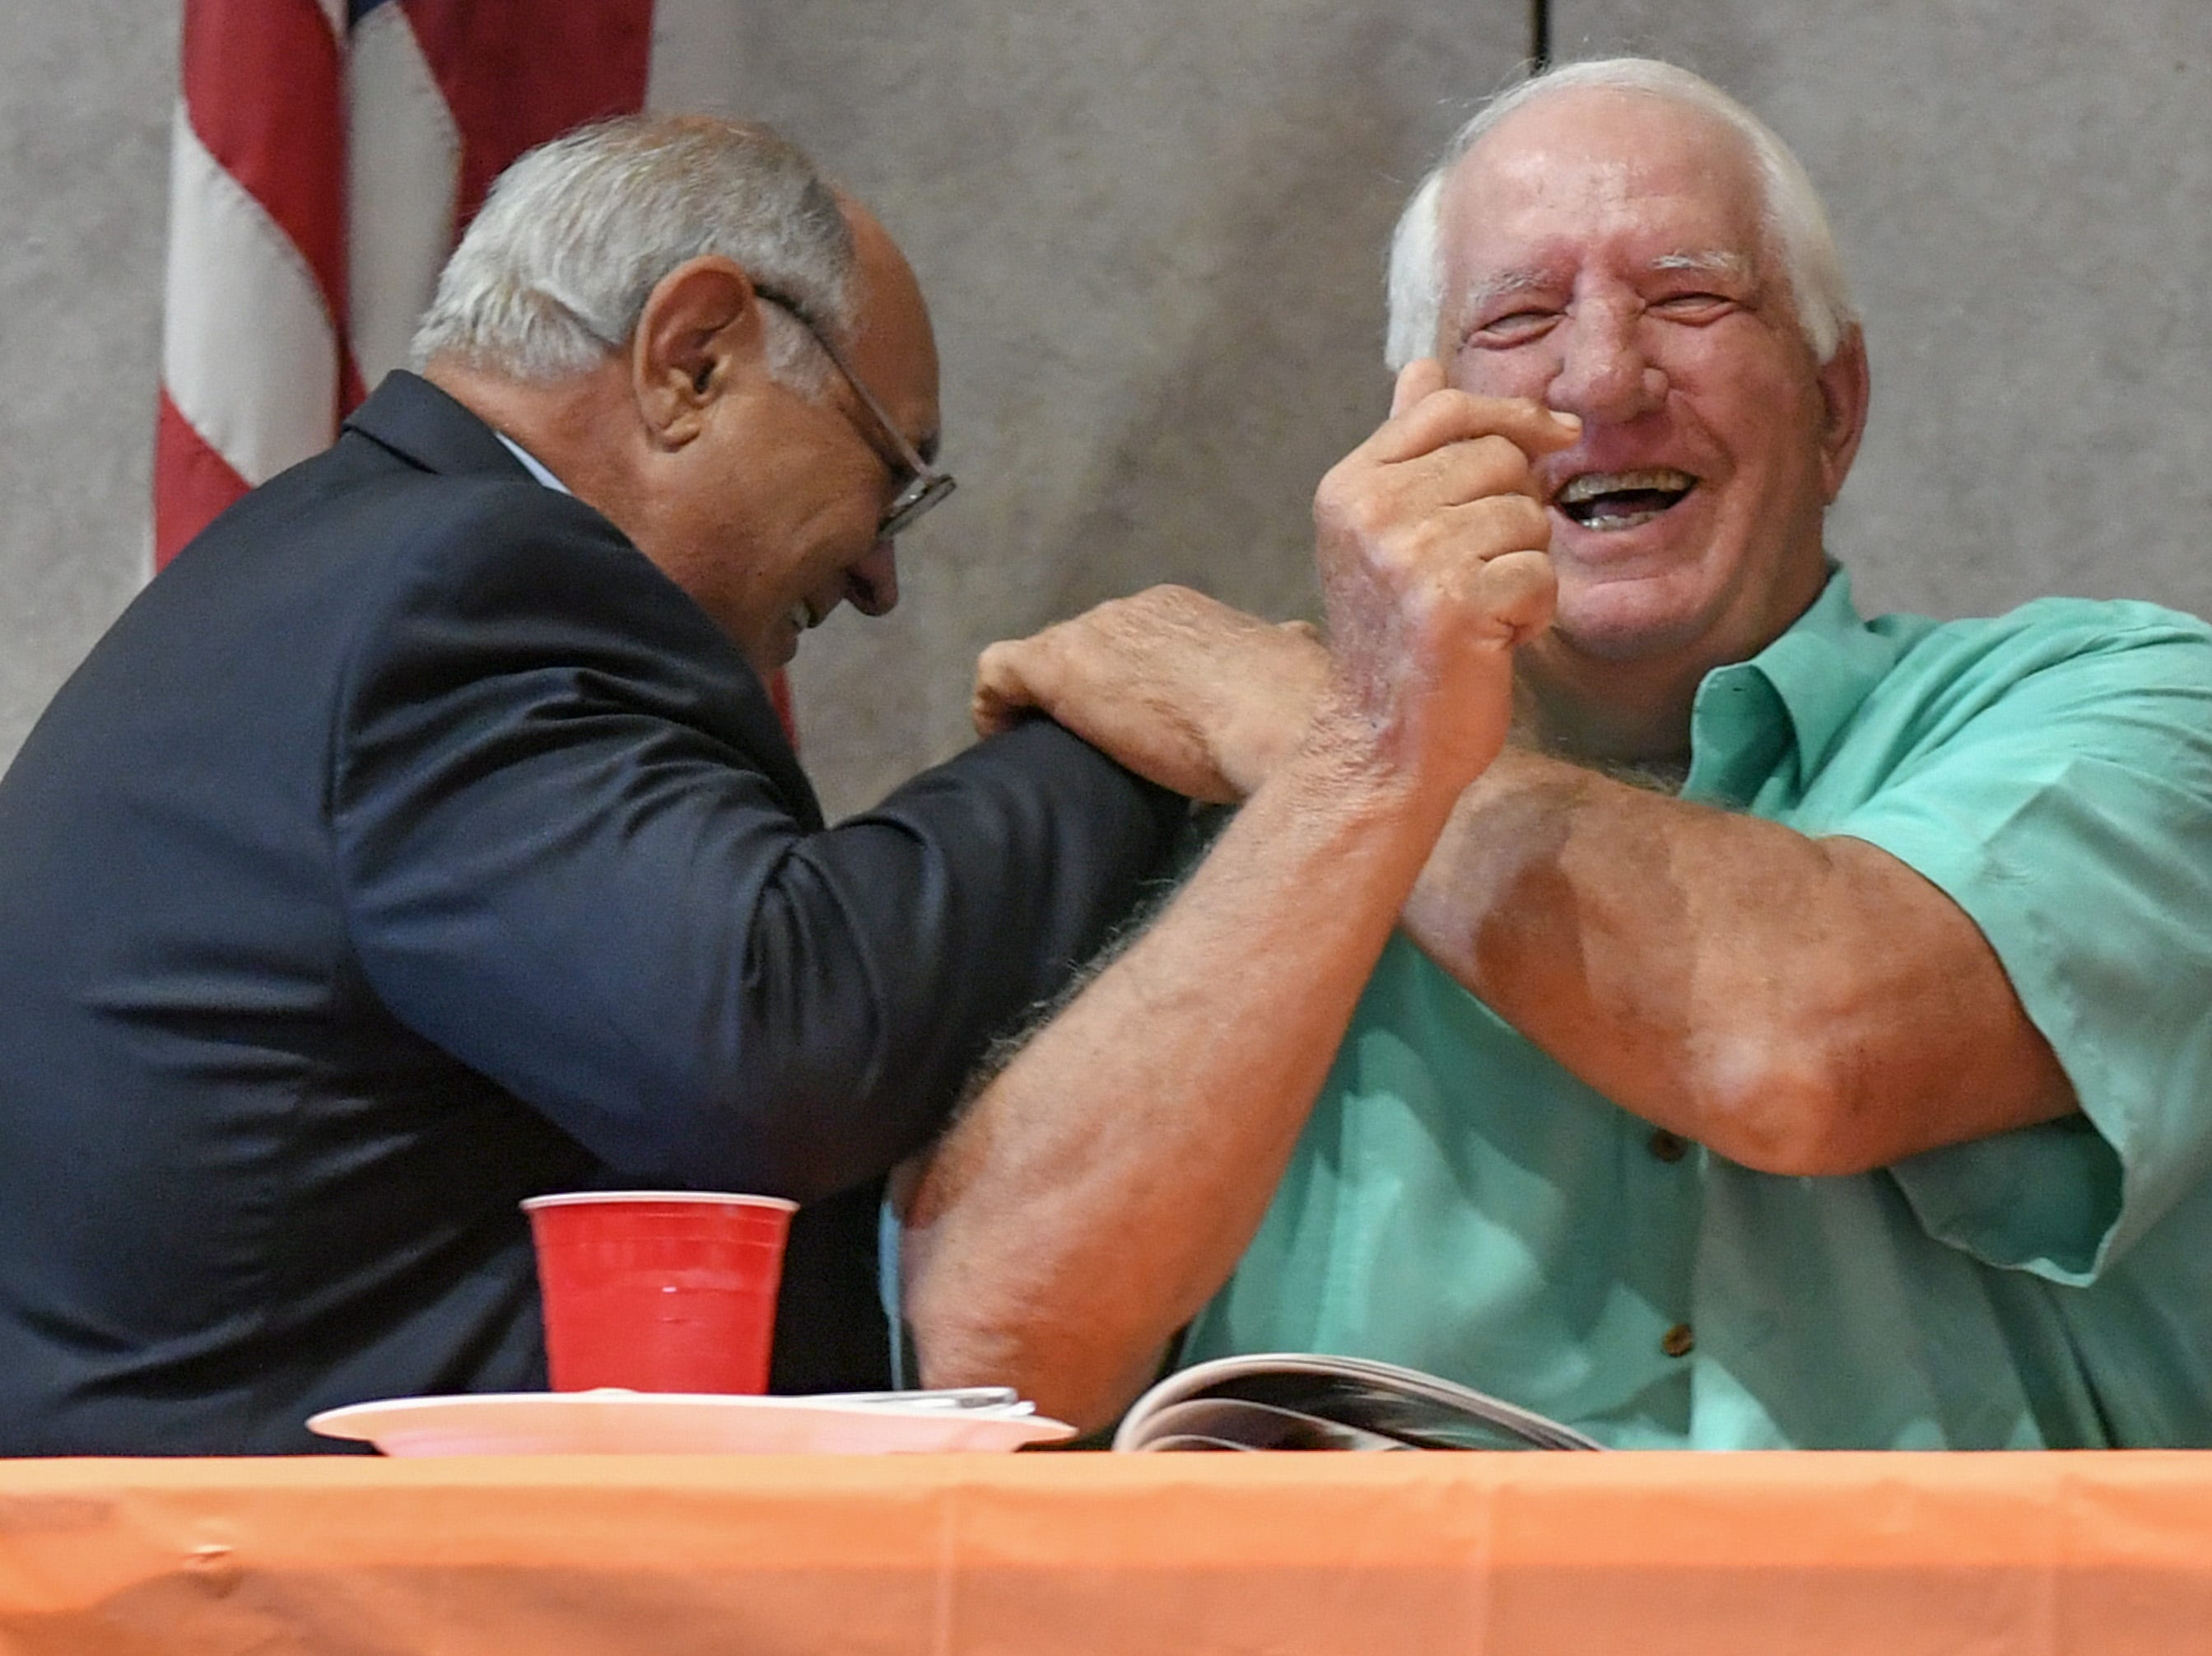 Wayne Jones, left, shares a laugh with Danny Ford during the Anderson Area Touchdown Club Annual Awards Banquet at the Anderson County Civic Center Monday, April 8th, 2019. Awards were given to the Players of the Year and the Coach of the Year from the eight Anderson County high schools. The club honored former Belton-Honea Path player Kendall Joseph who was part of two National Championship Clemson football teams.